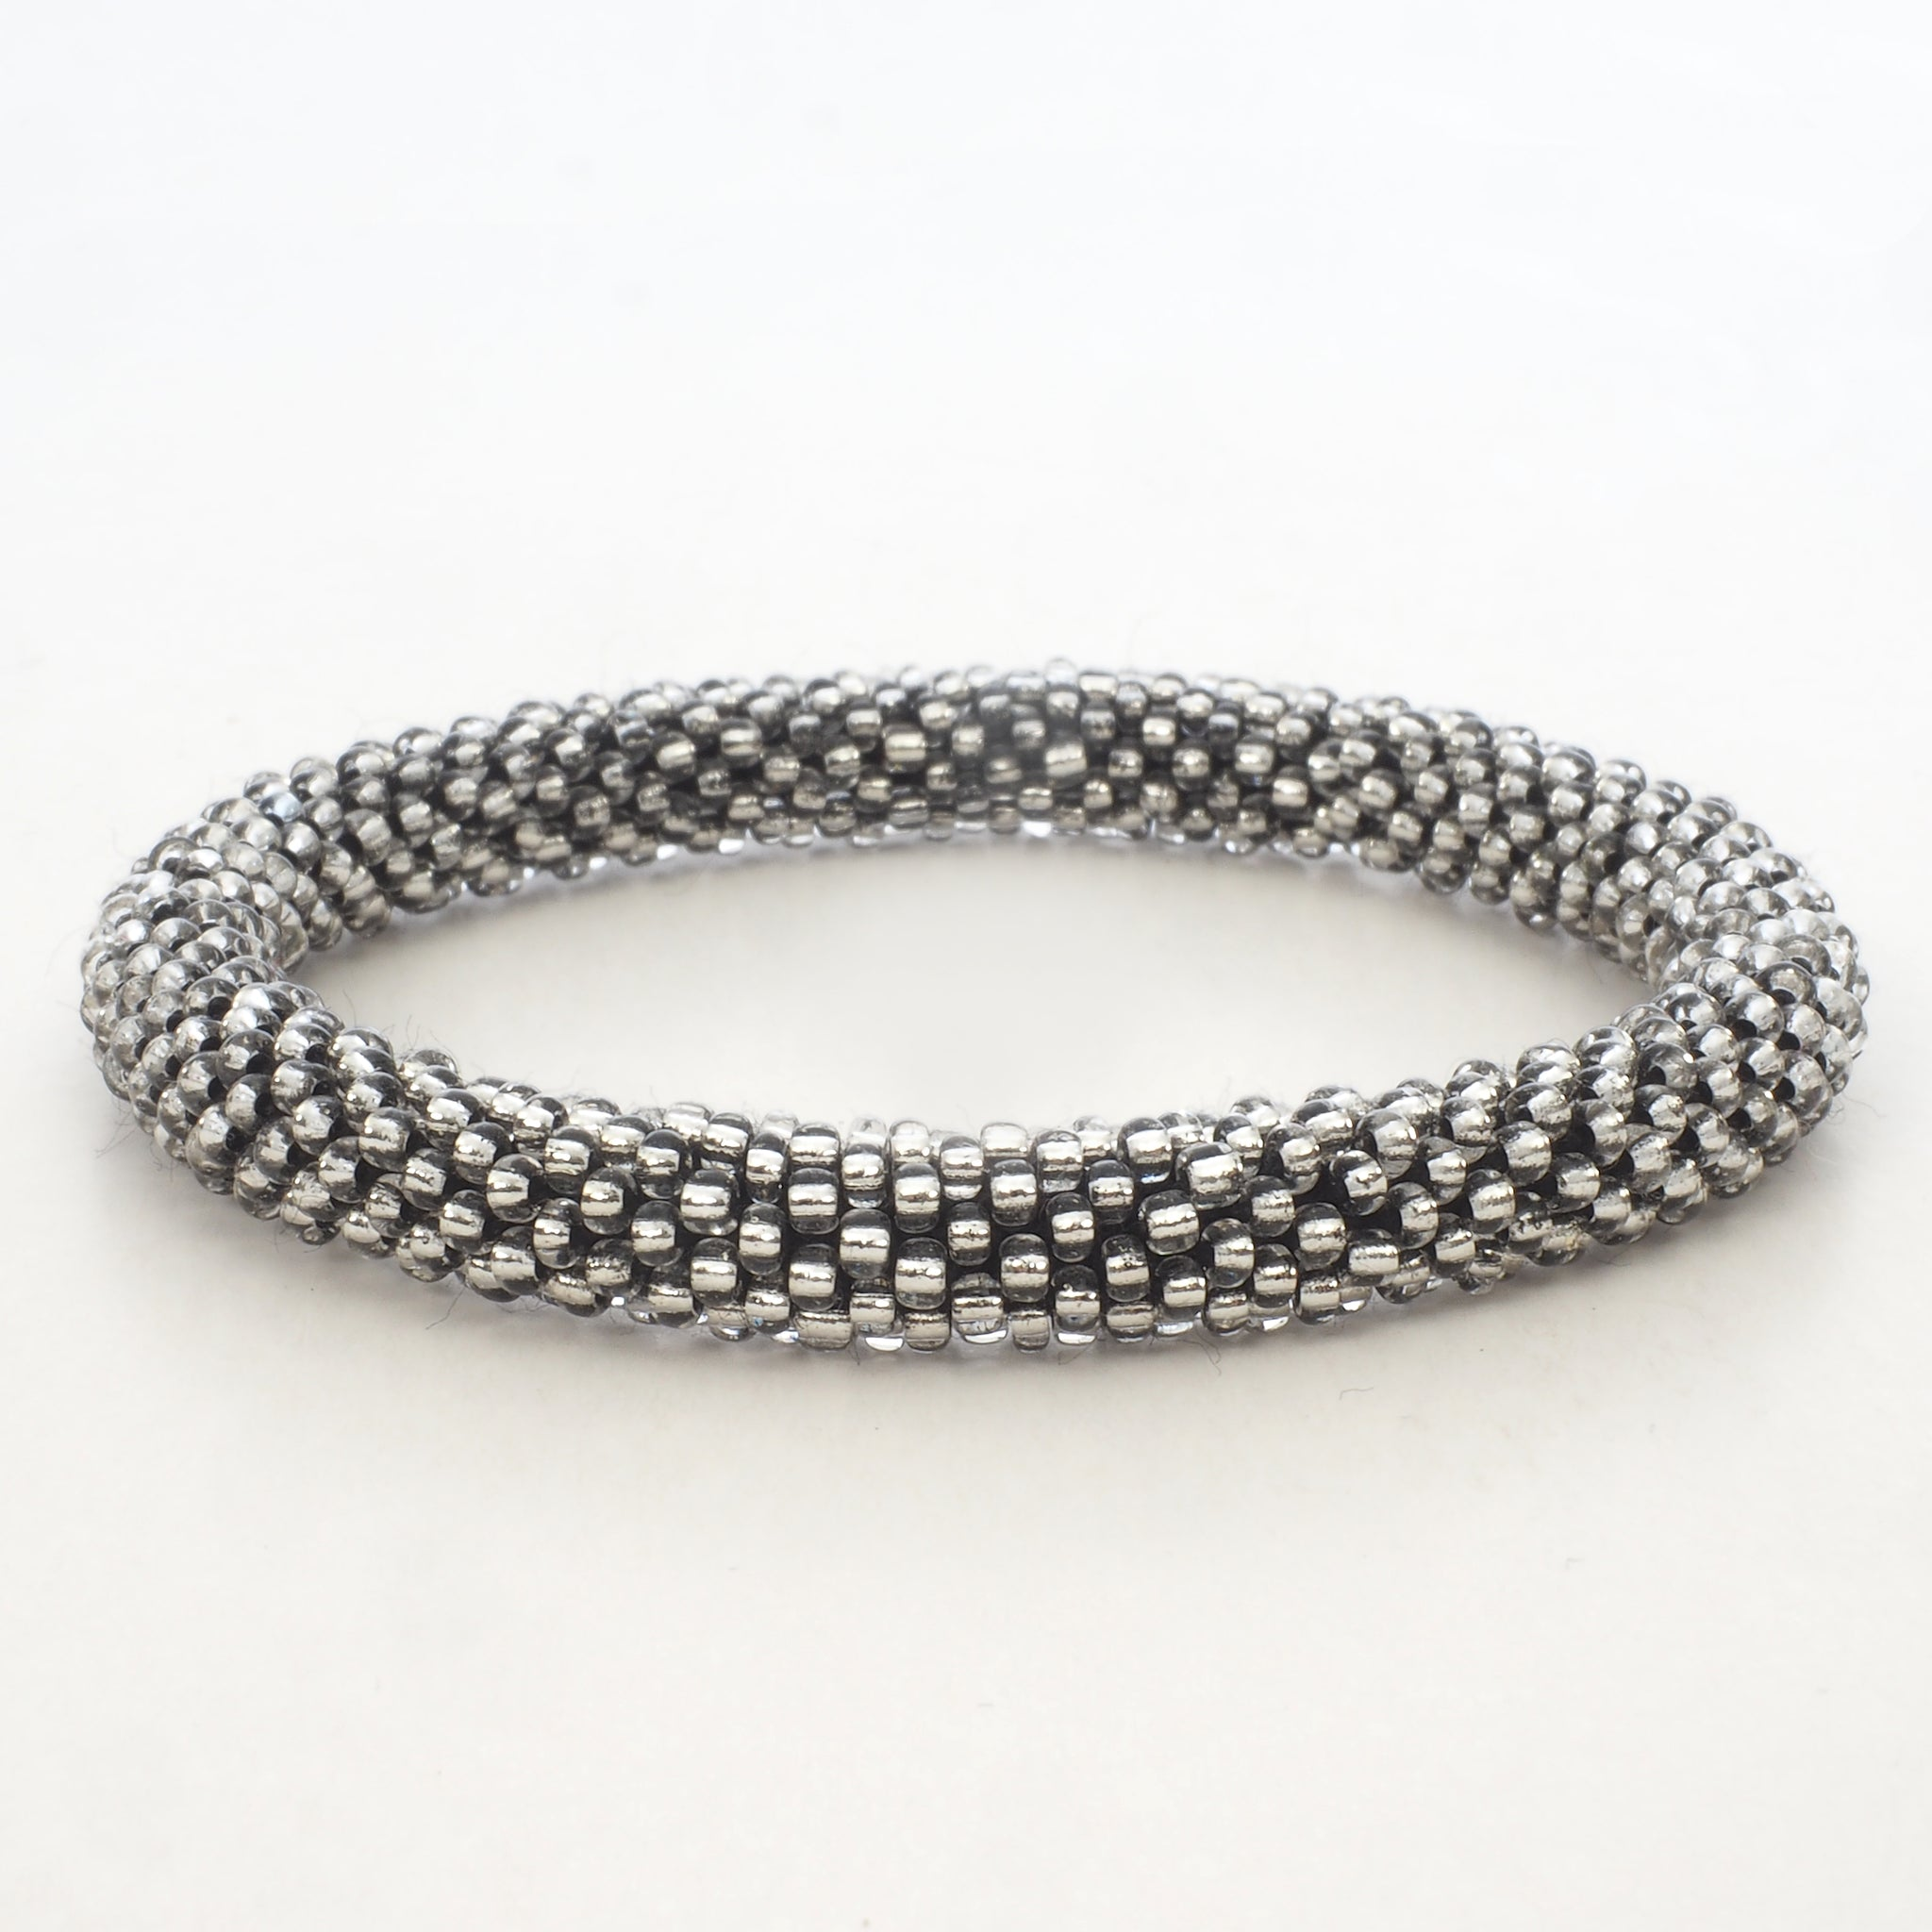 Beaded Bracelet - Silver Shiny Transparent Dark